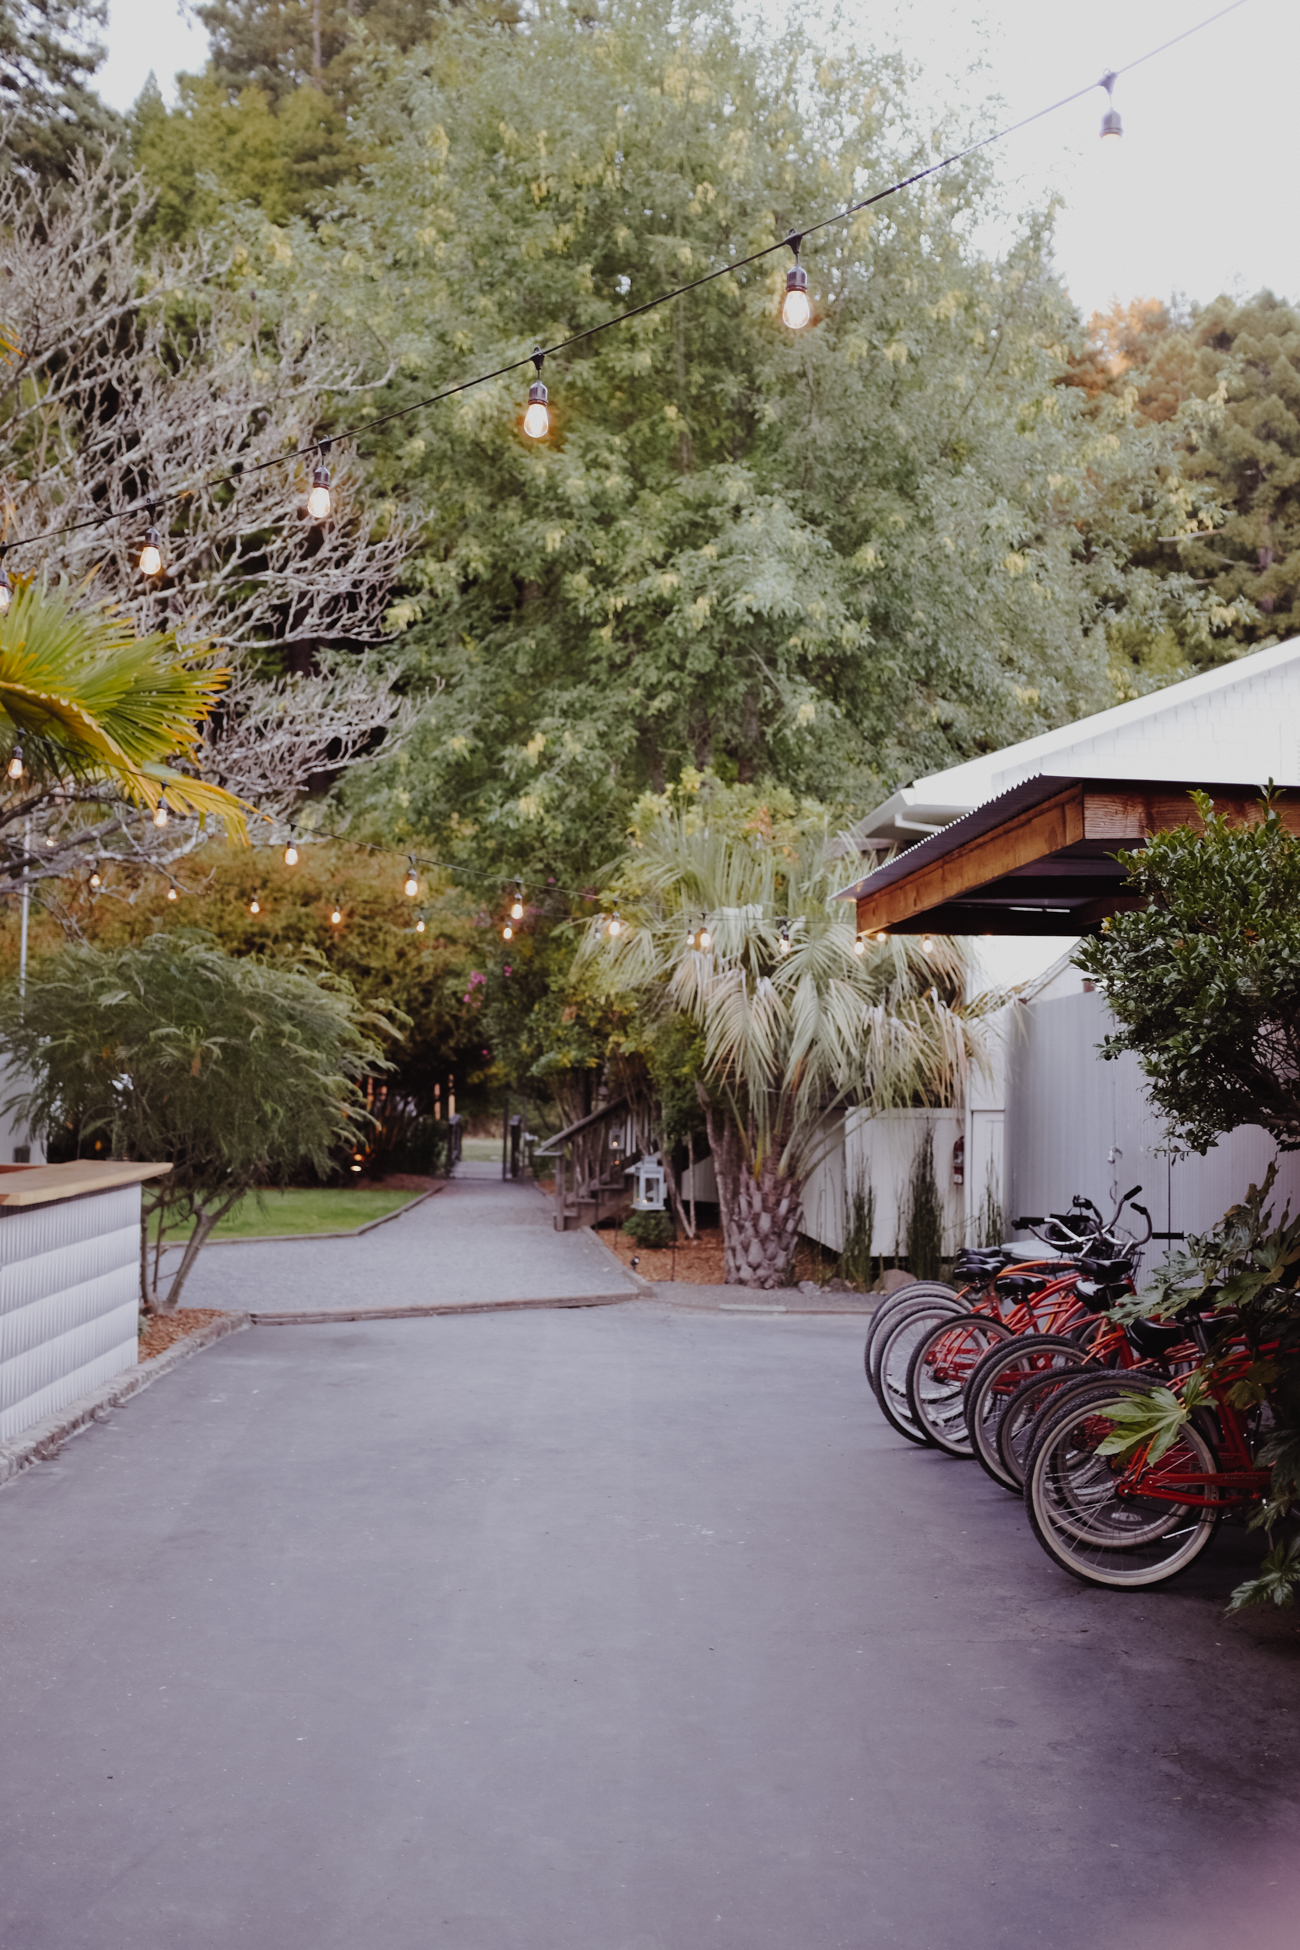 24 HRS IN GUERNEVILLE: WHERE TO EAT, DRINK, AND STAY | via. Birdie Shoots